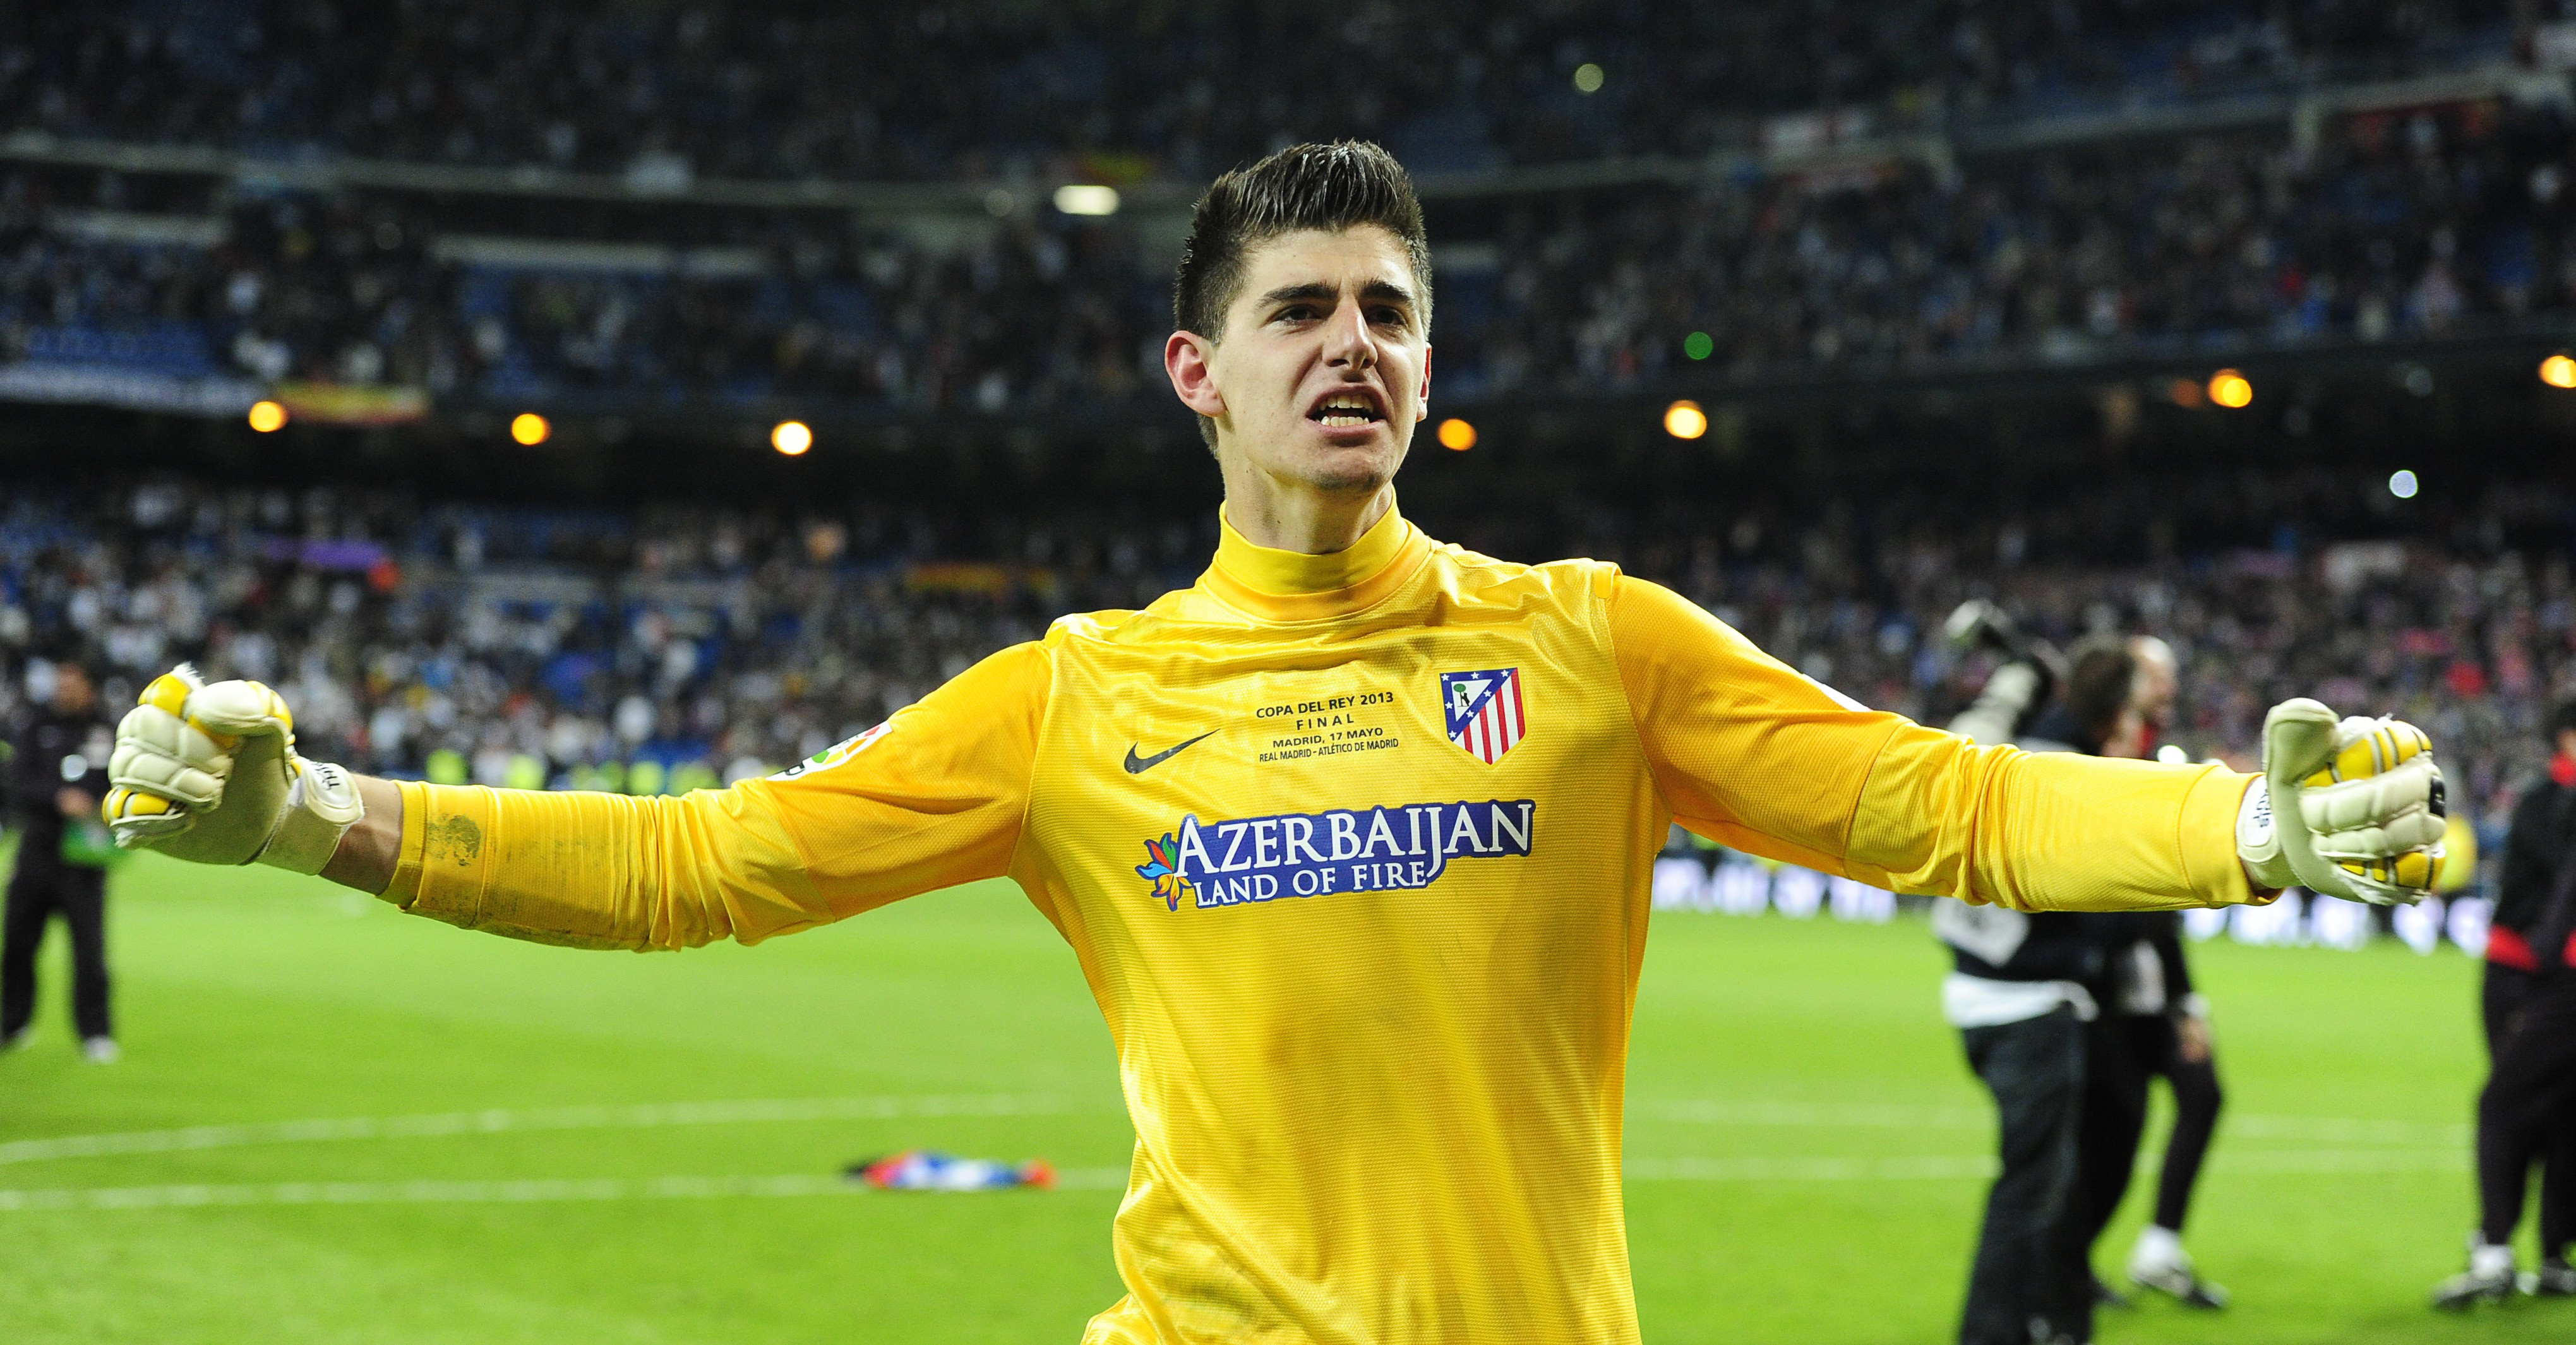 Wallpaper Football Thibaut Courtois soccer The Best players